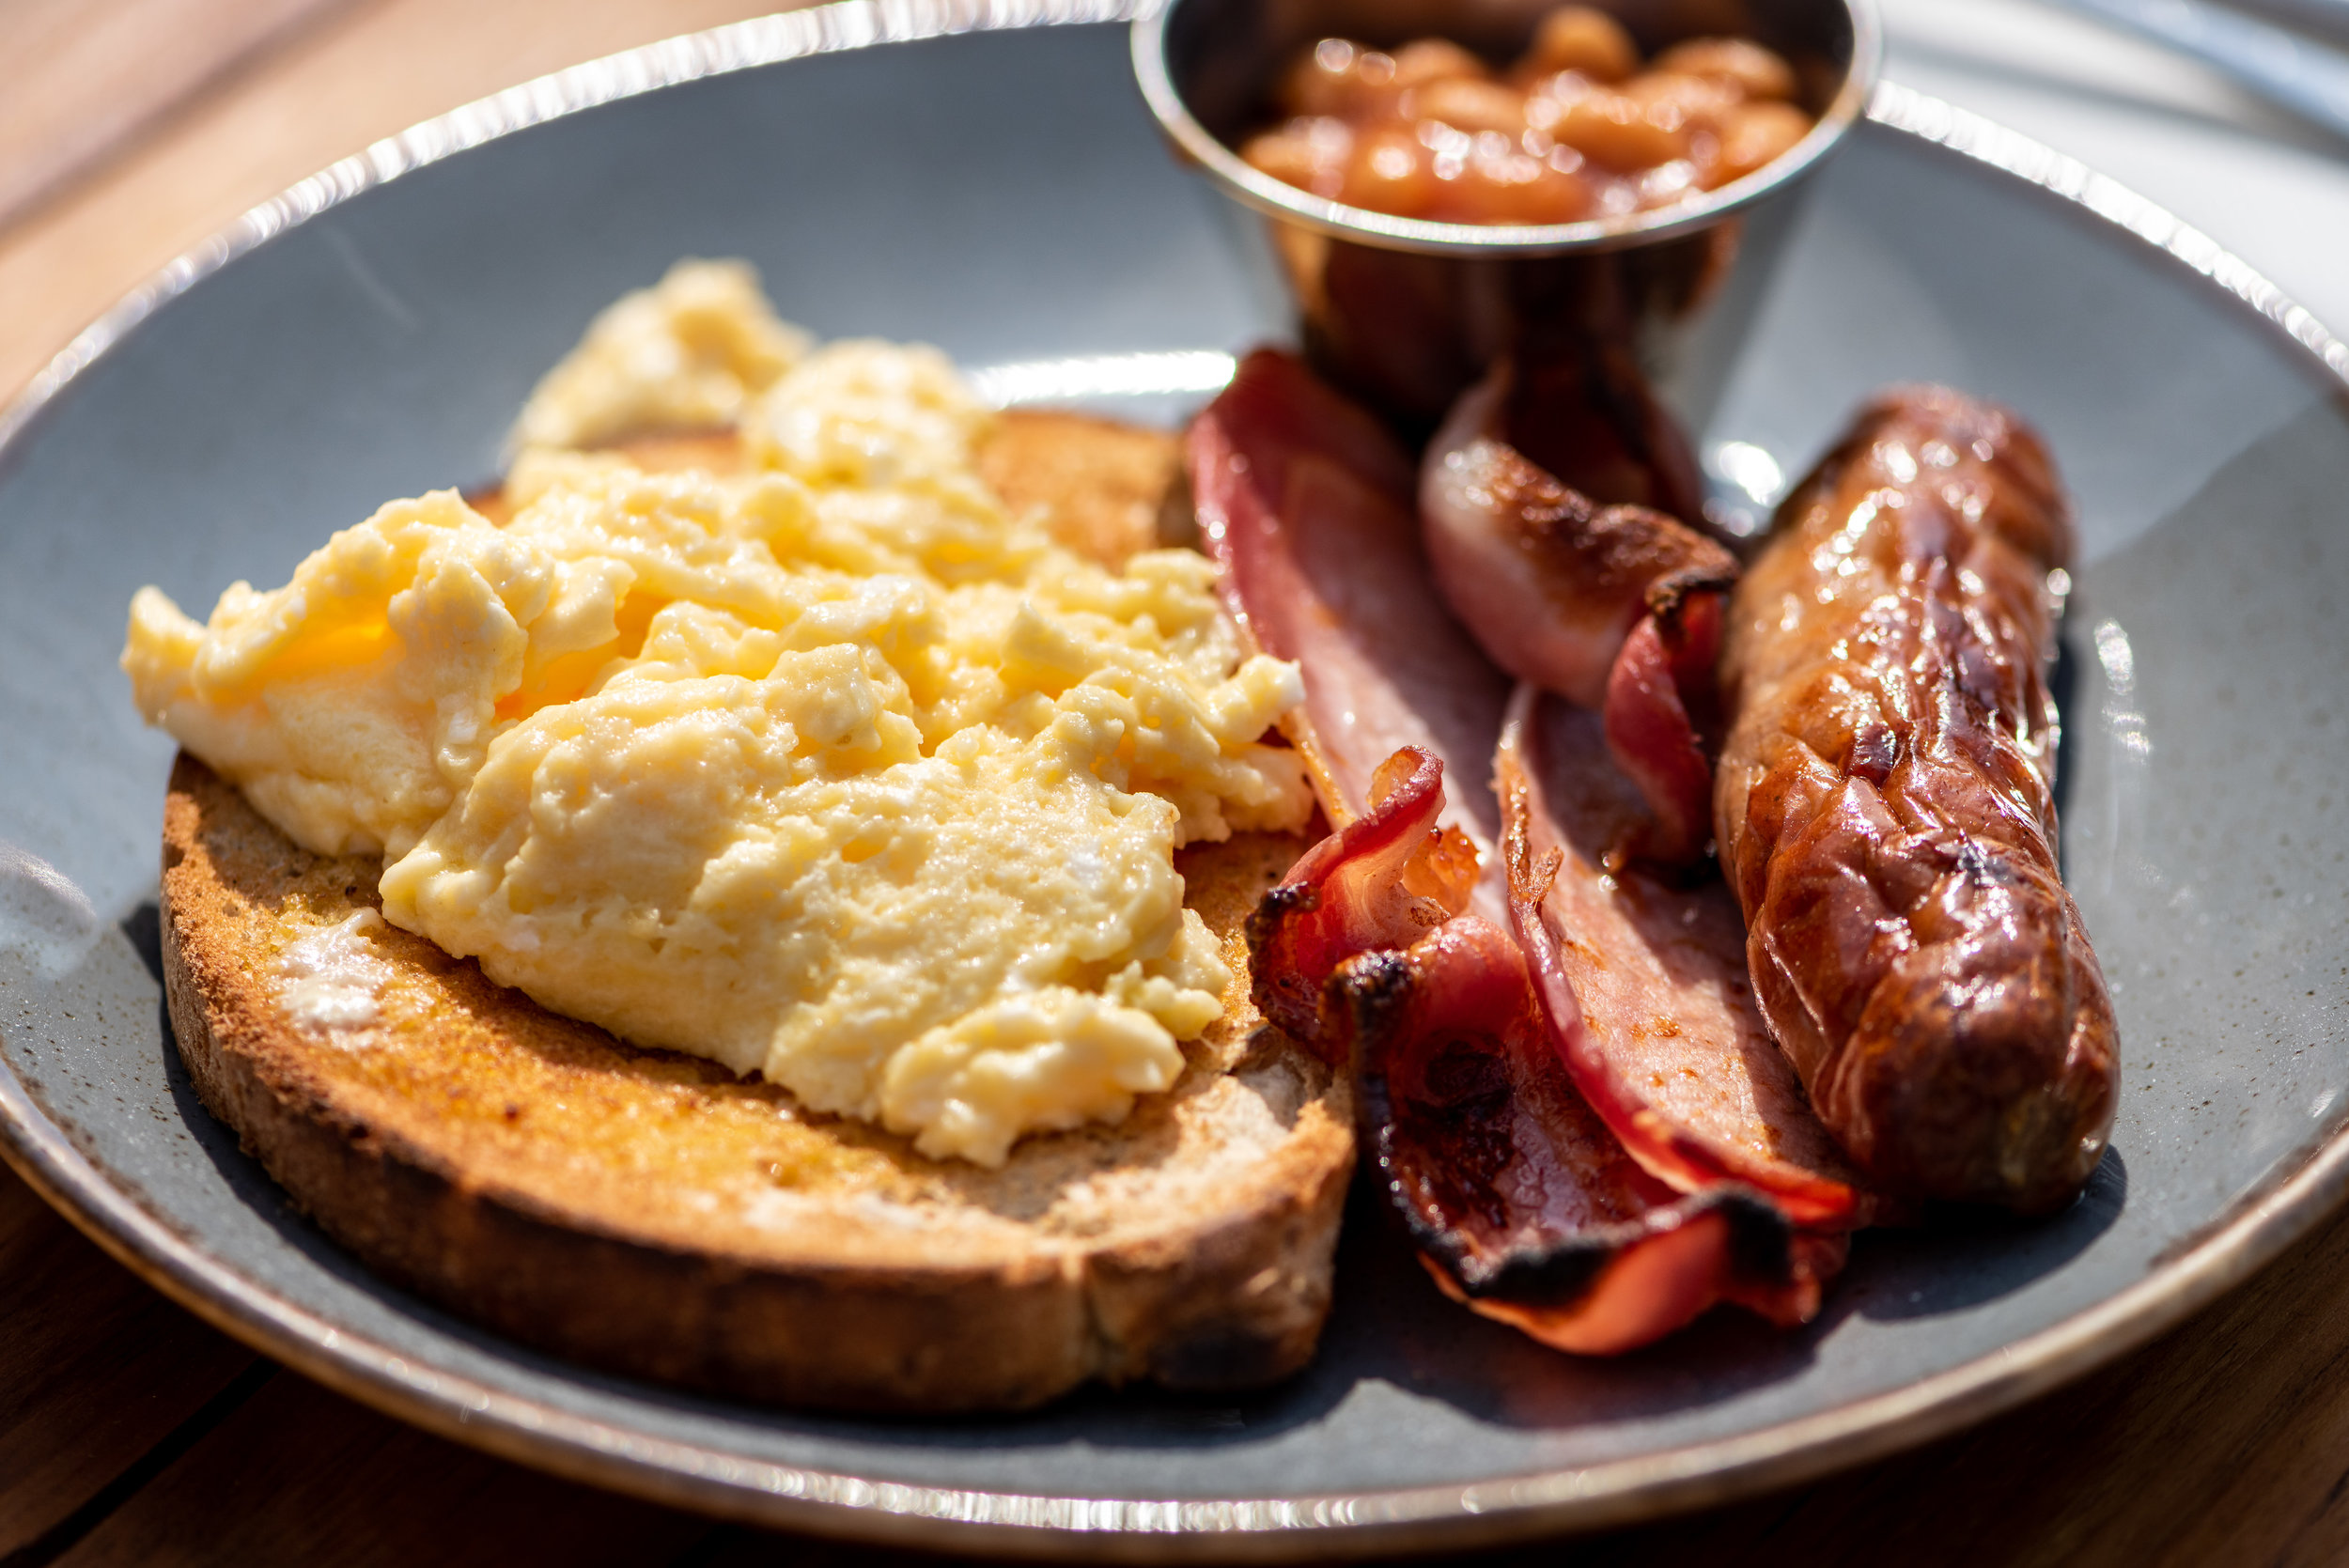 Local Sausage, Scrambled Egg & Baked Beans With Added Bacon